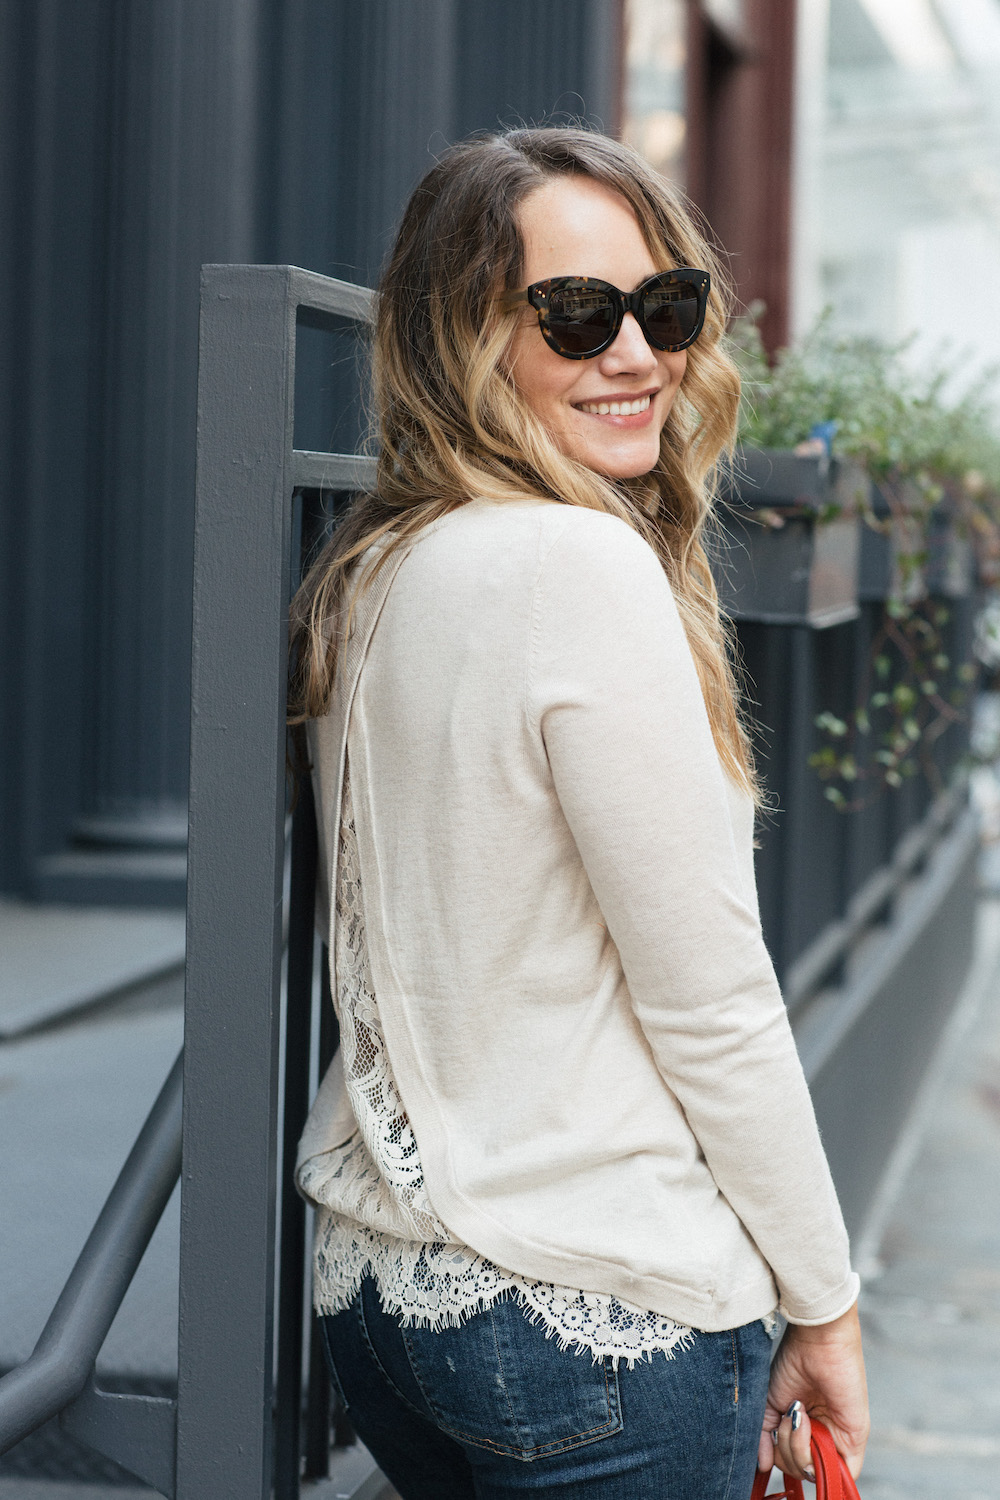 Easy Fall Outfit Ideas: J.Crew Gingham Cape, Joie Marianna Sweater, Rag & Bone Frayed Skinny Jeans - Grace Atwood, The StripeEasy Fall Outfit Ideas: J.Crew Gingham Cape, Joie Marianna Sweater, Rag & Bone Frayed Skinny Jeans - Grace Atwood, The Stripe